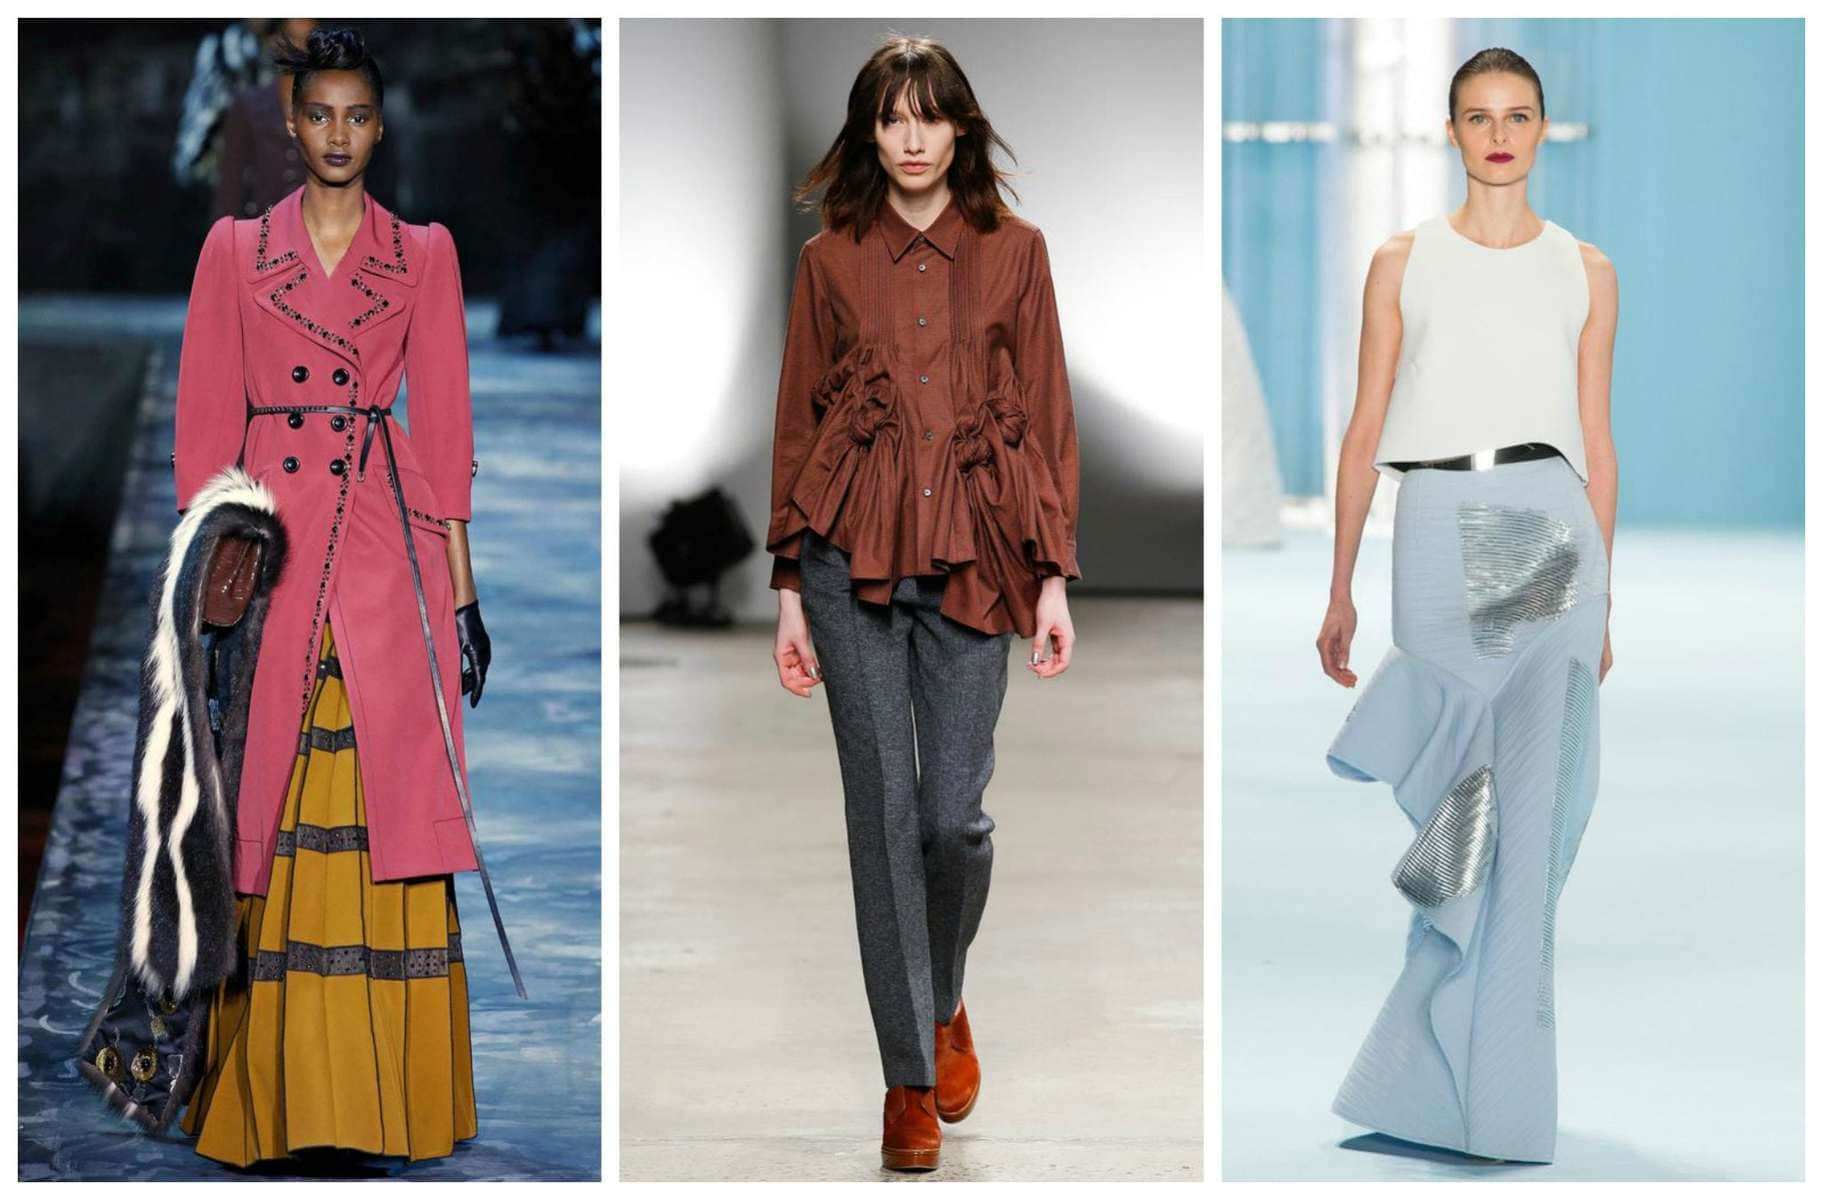 AW15 RTW Trends The Bustle